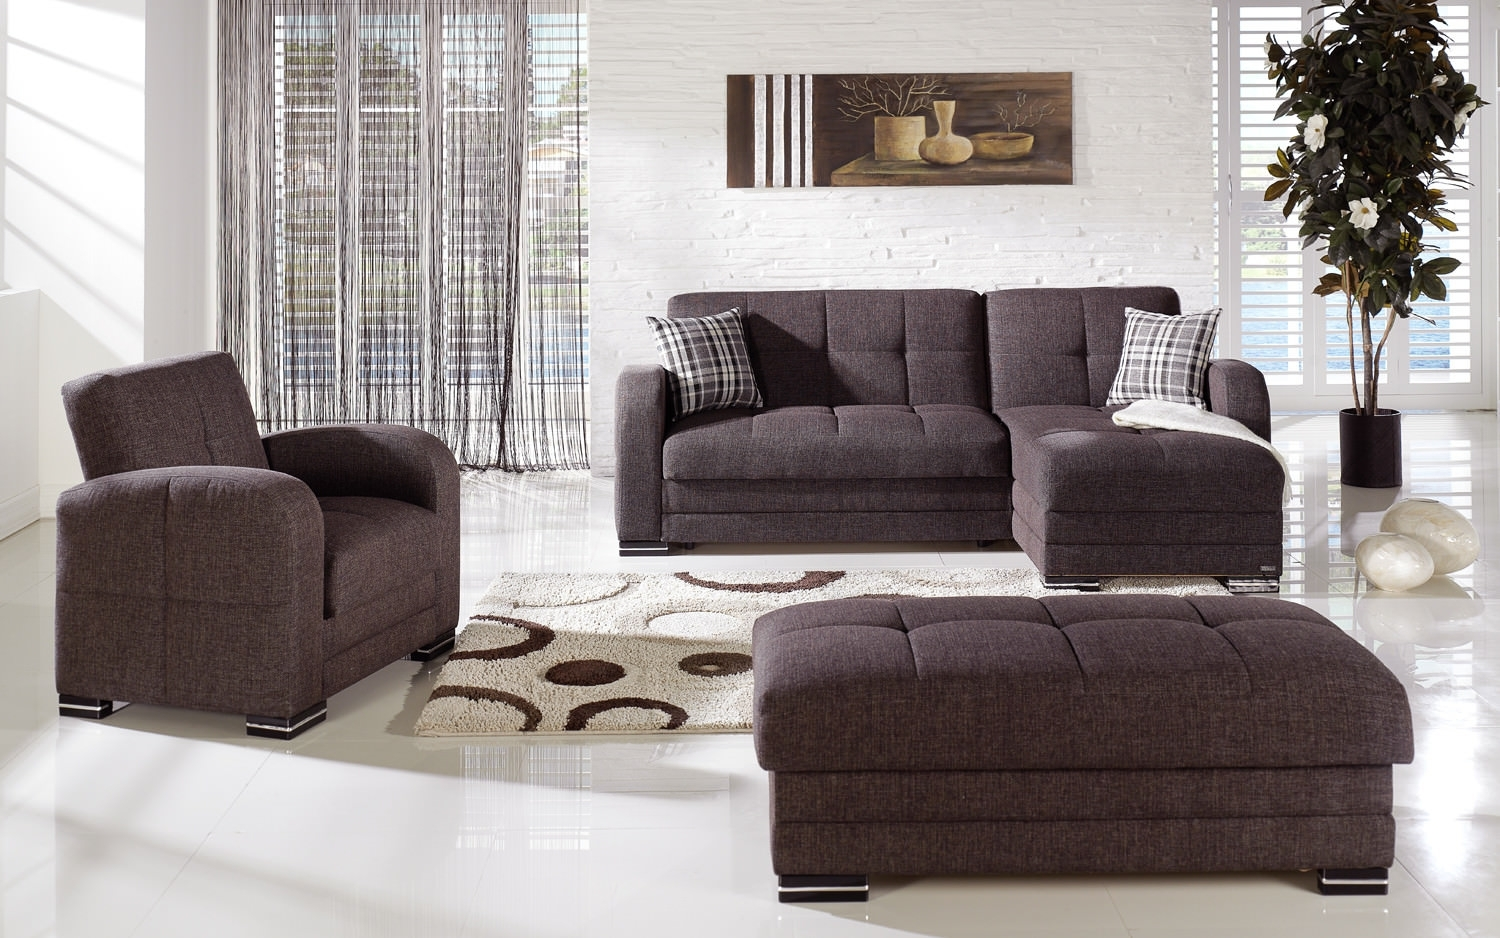 Kubo Andre Dark Brown Sectional Sofaistikbal (Sunset) throughout Aspen 2 Piece Sleeper Sectionals With Laf Chaise (Image 15 of 30)